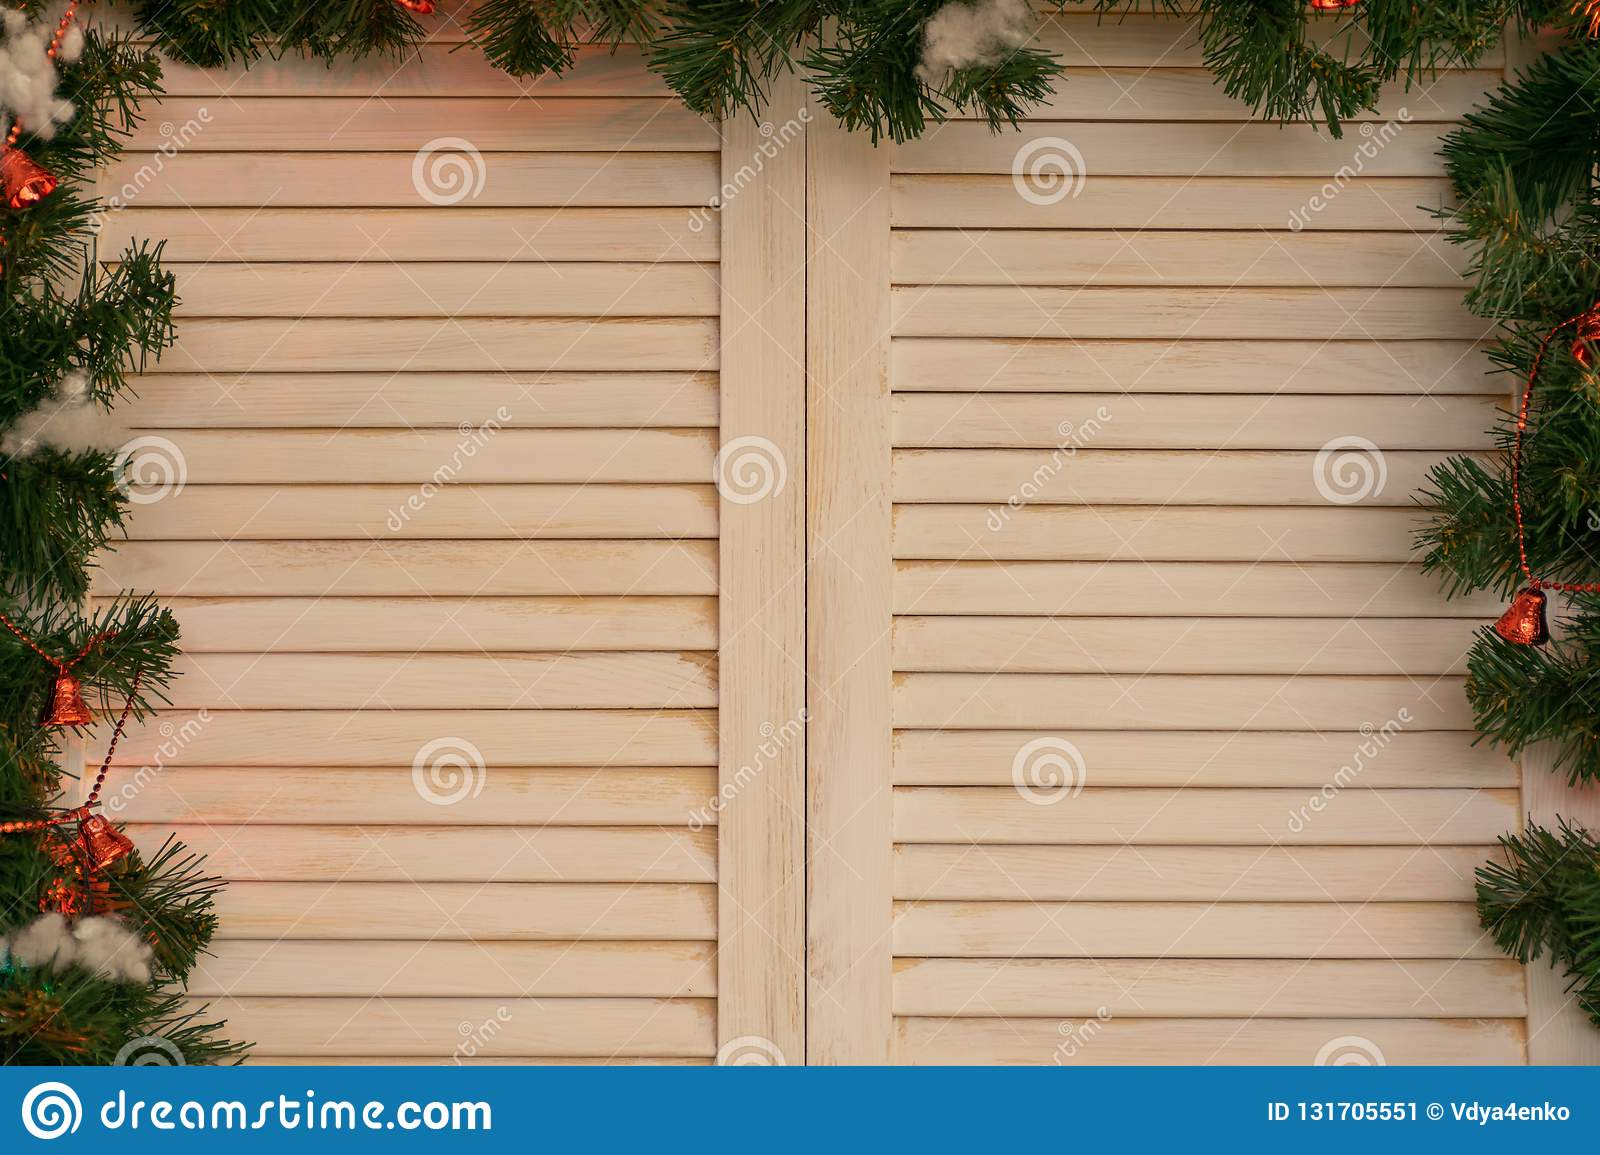 A tree window with Christmas decor